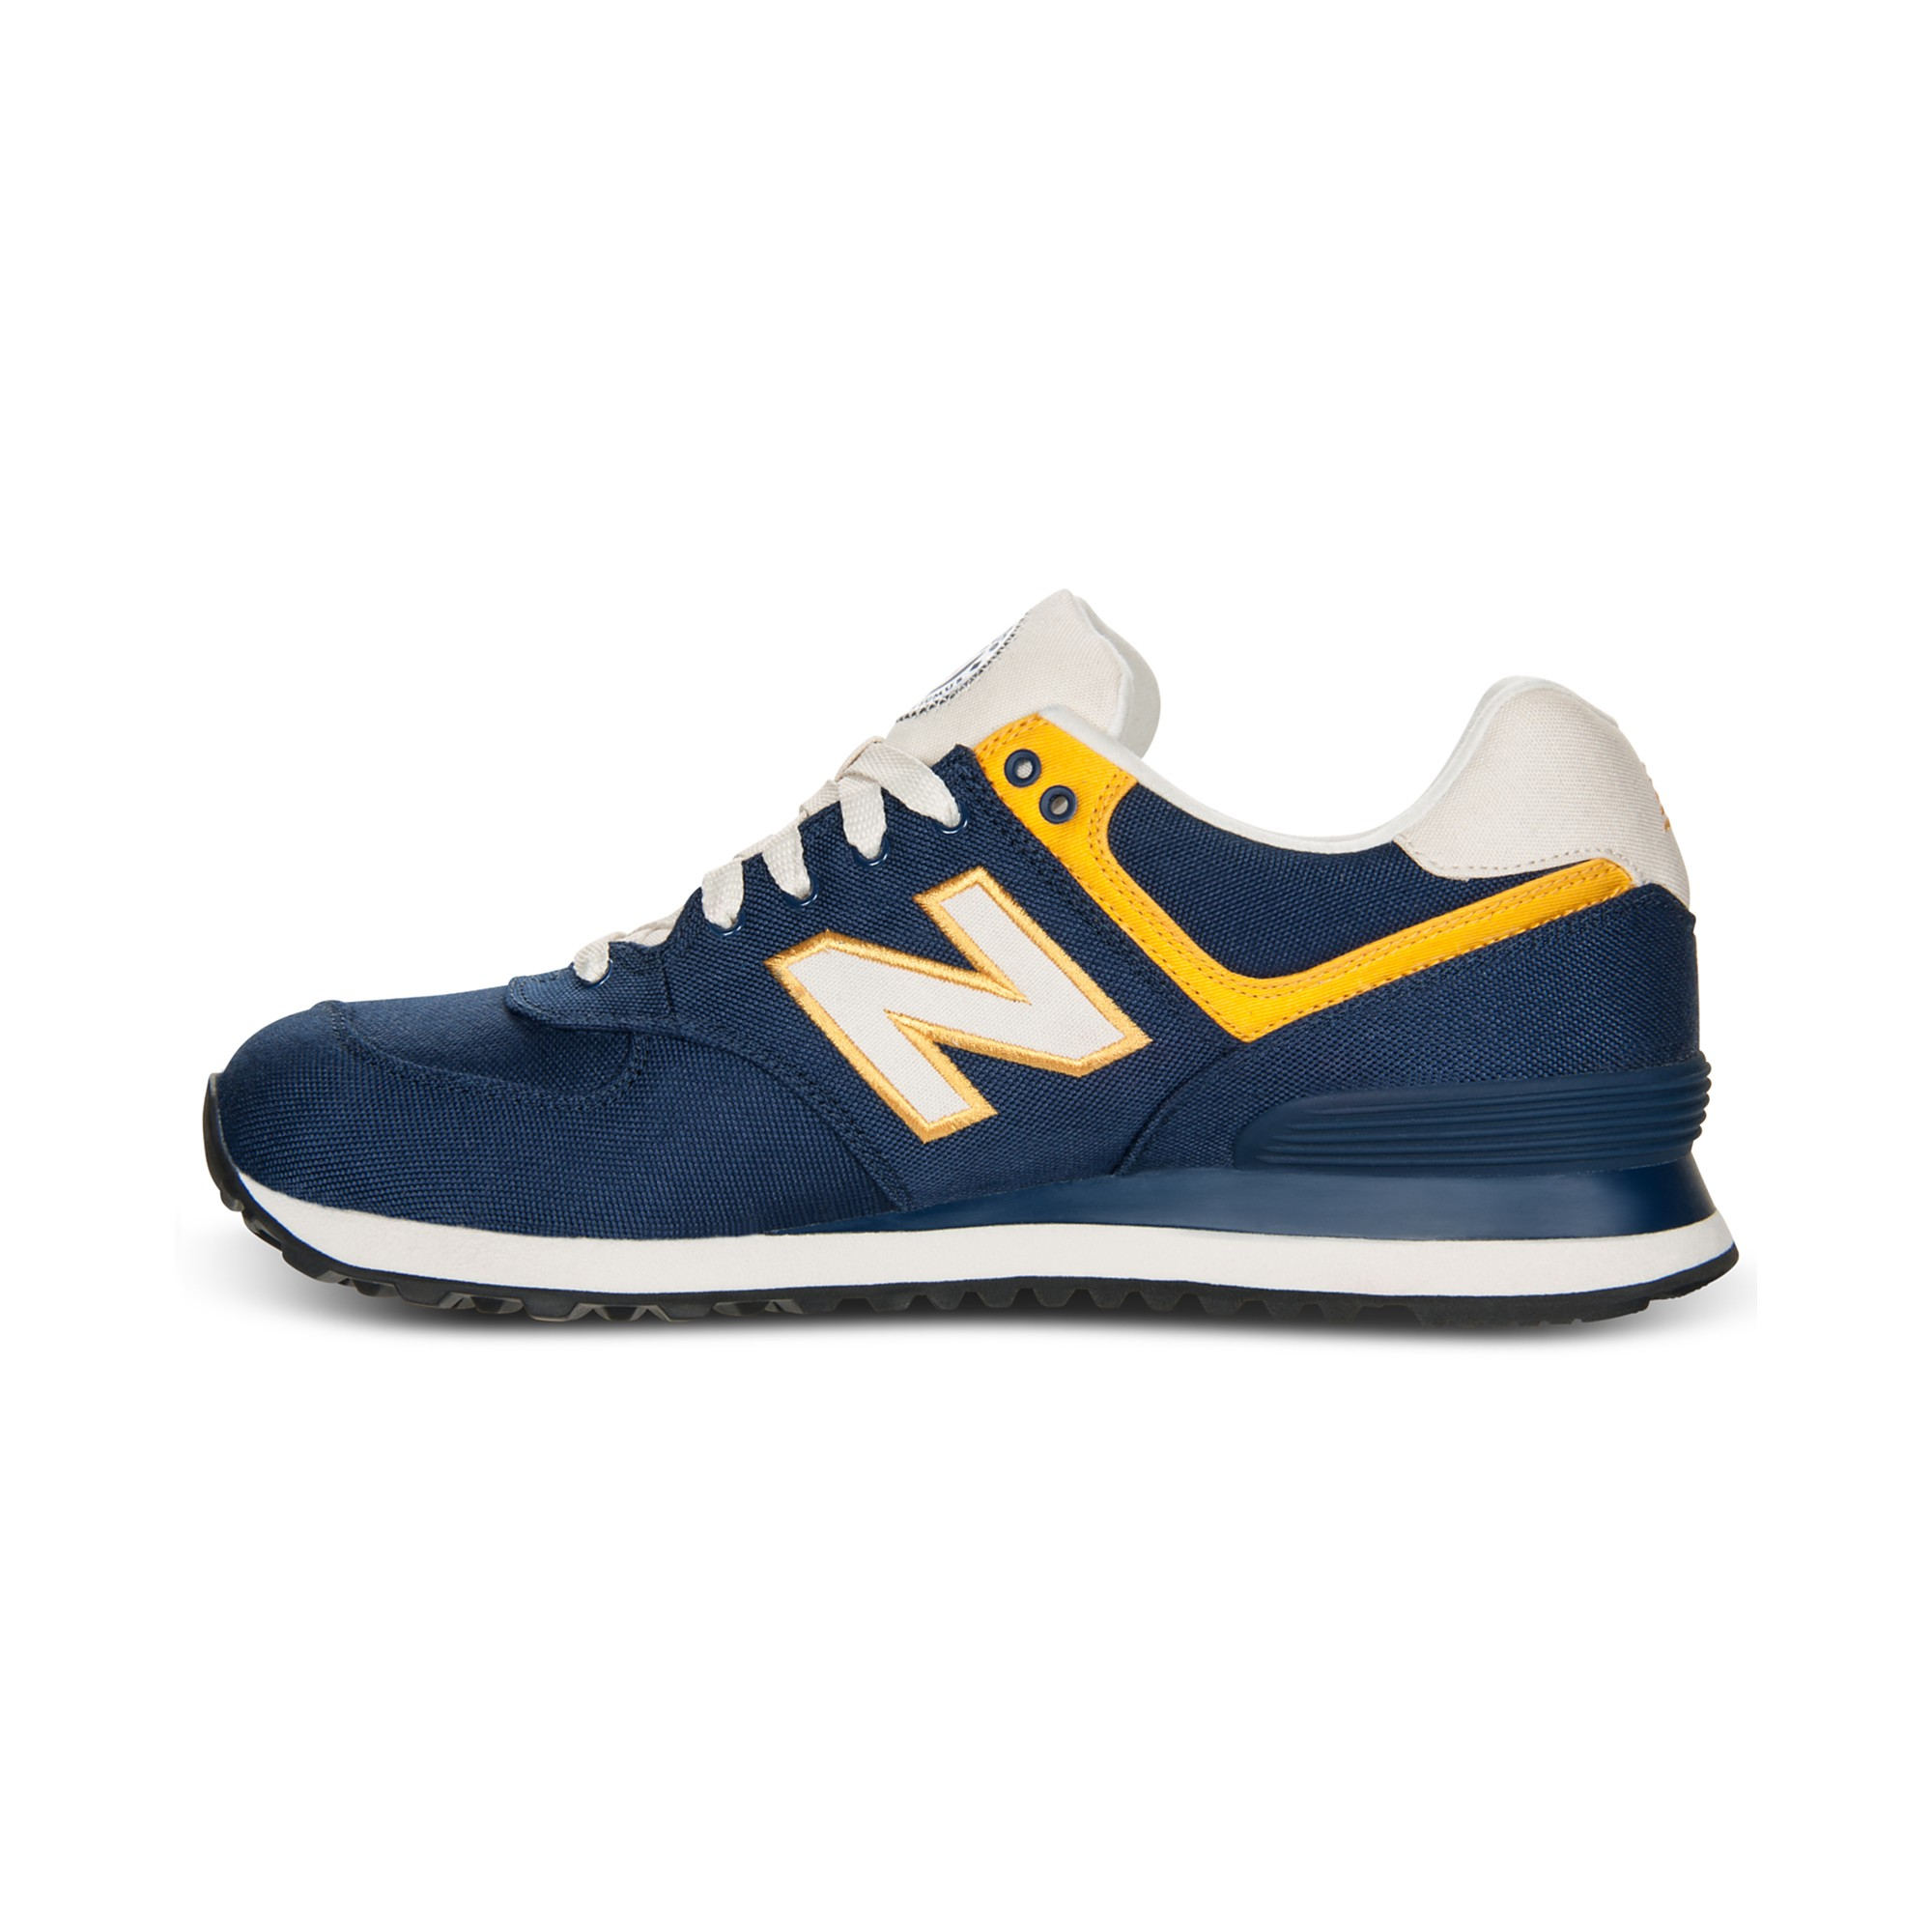 lyst new balance 574 sneakers in blue for men. Black Bedroom Furniture Sets. Home Design Ideas